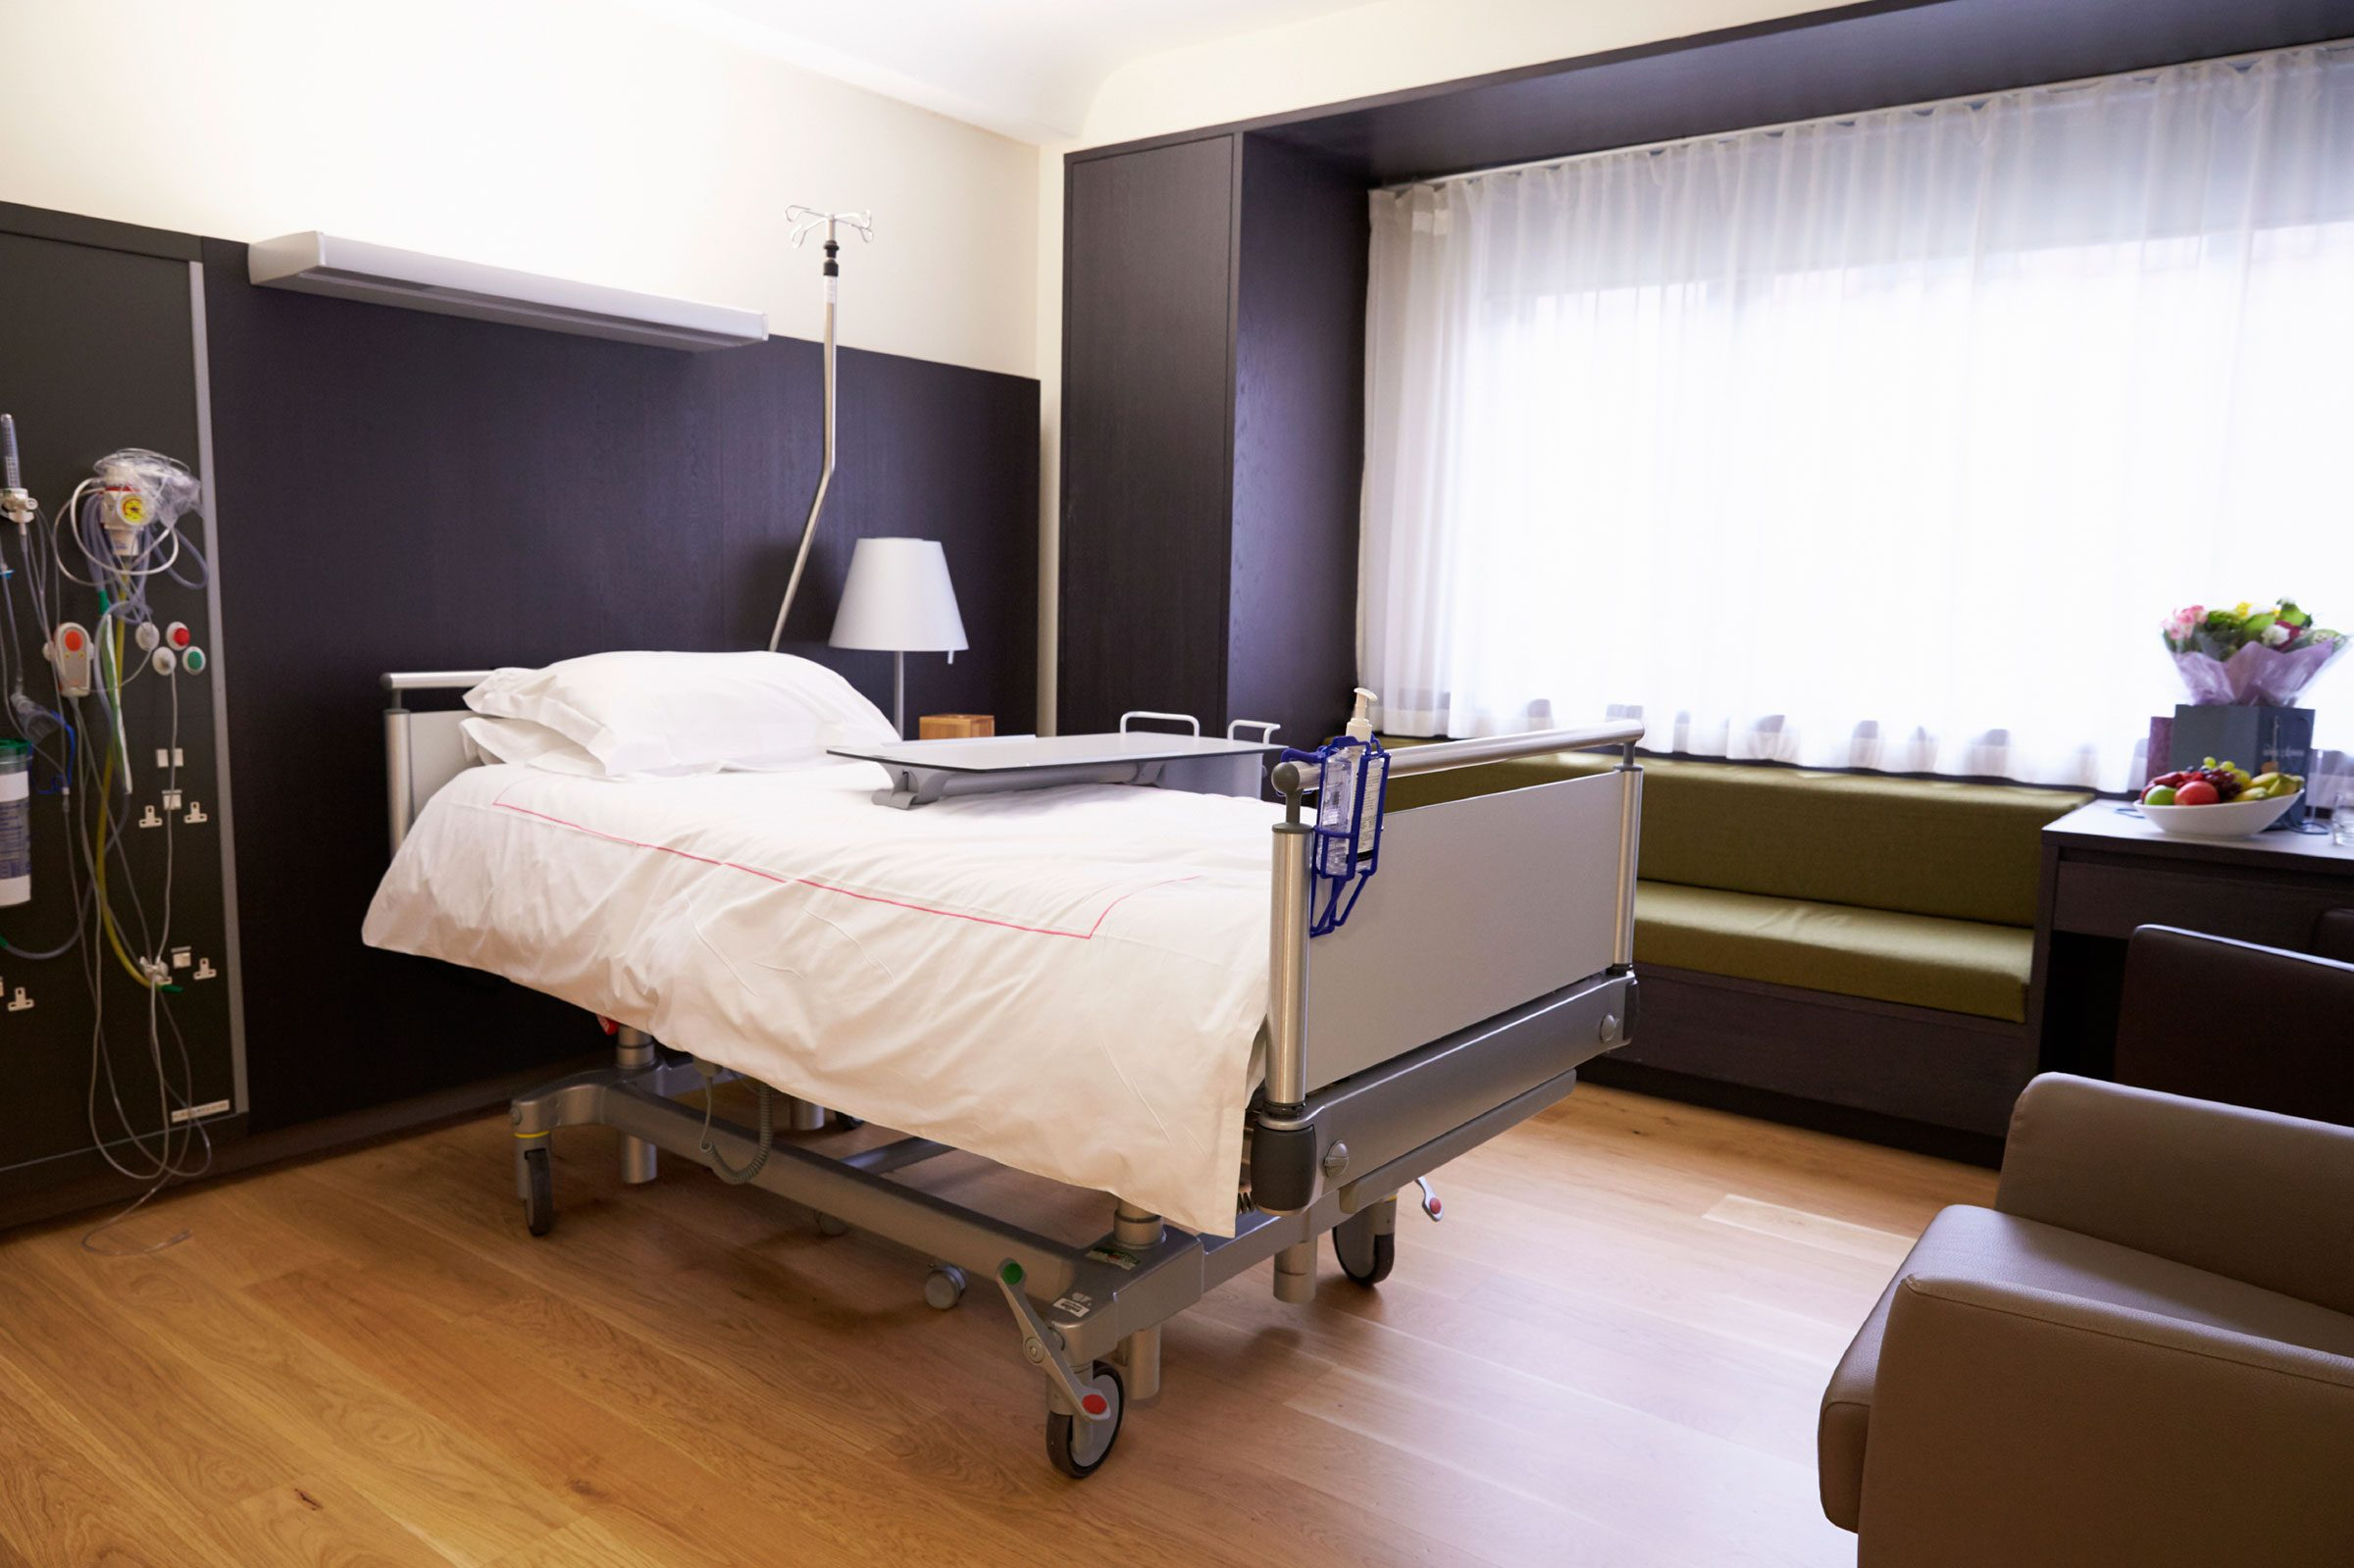 Hospitals Are Becoming More Like Hotels